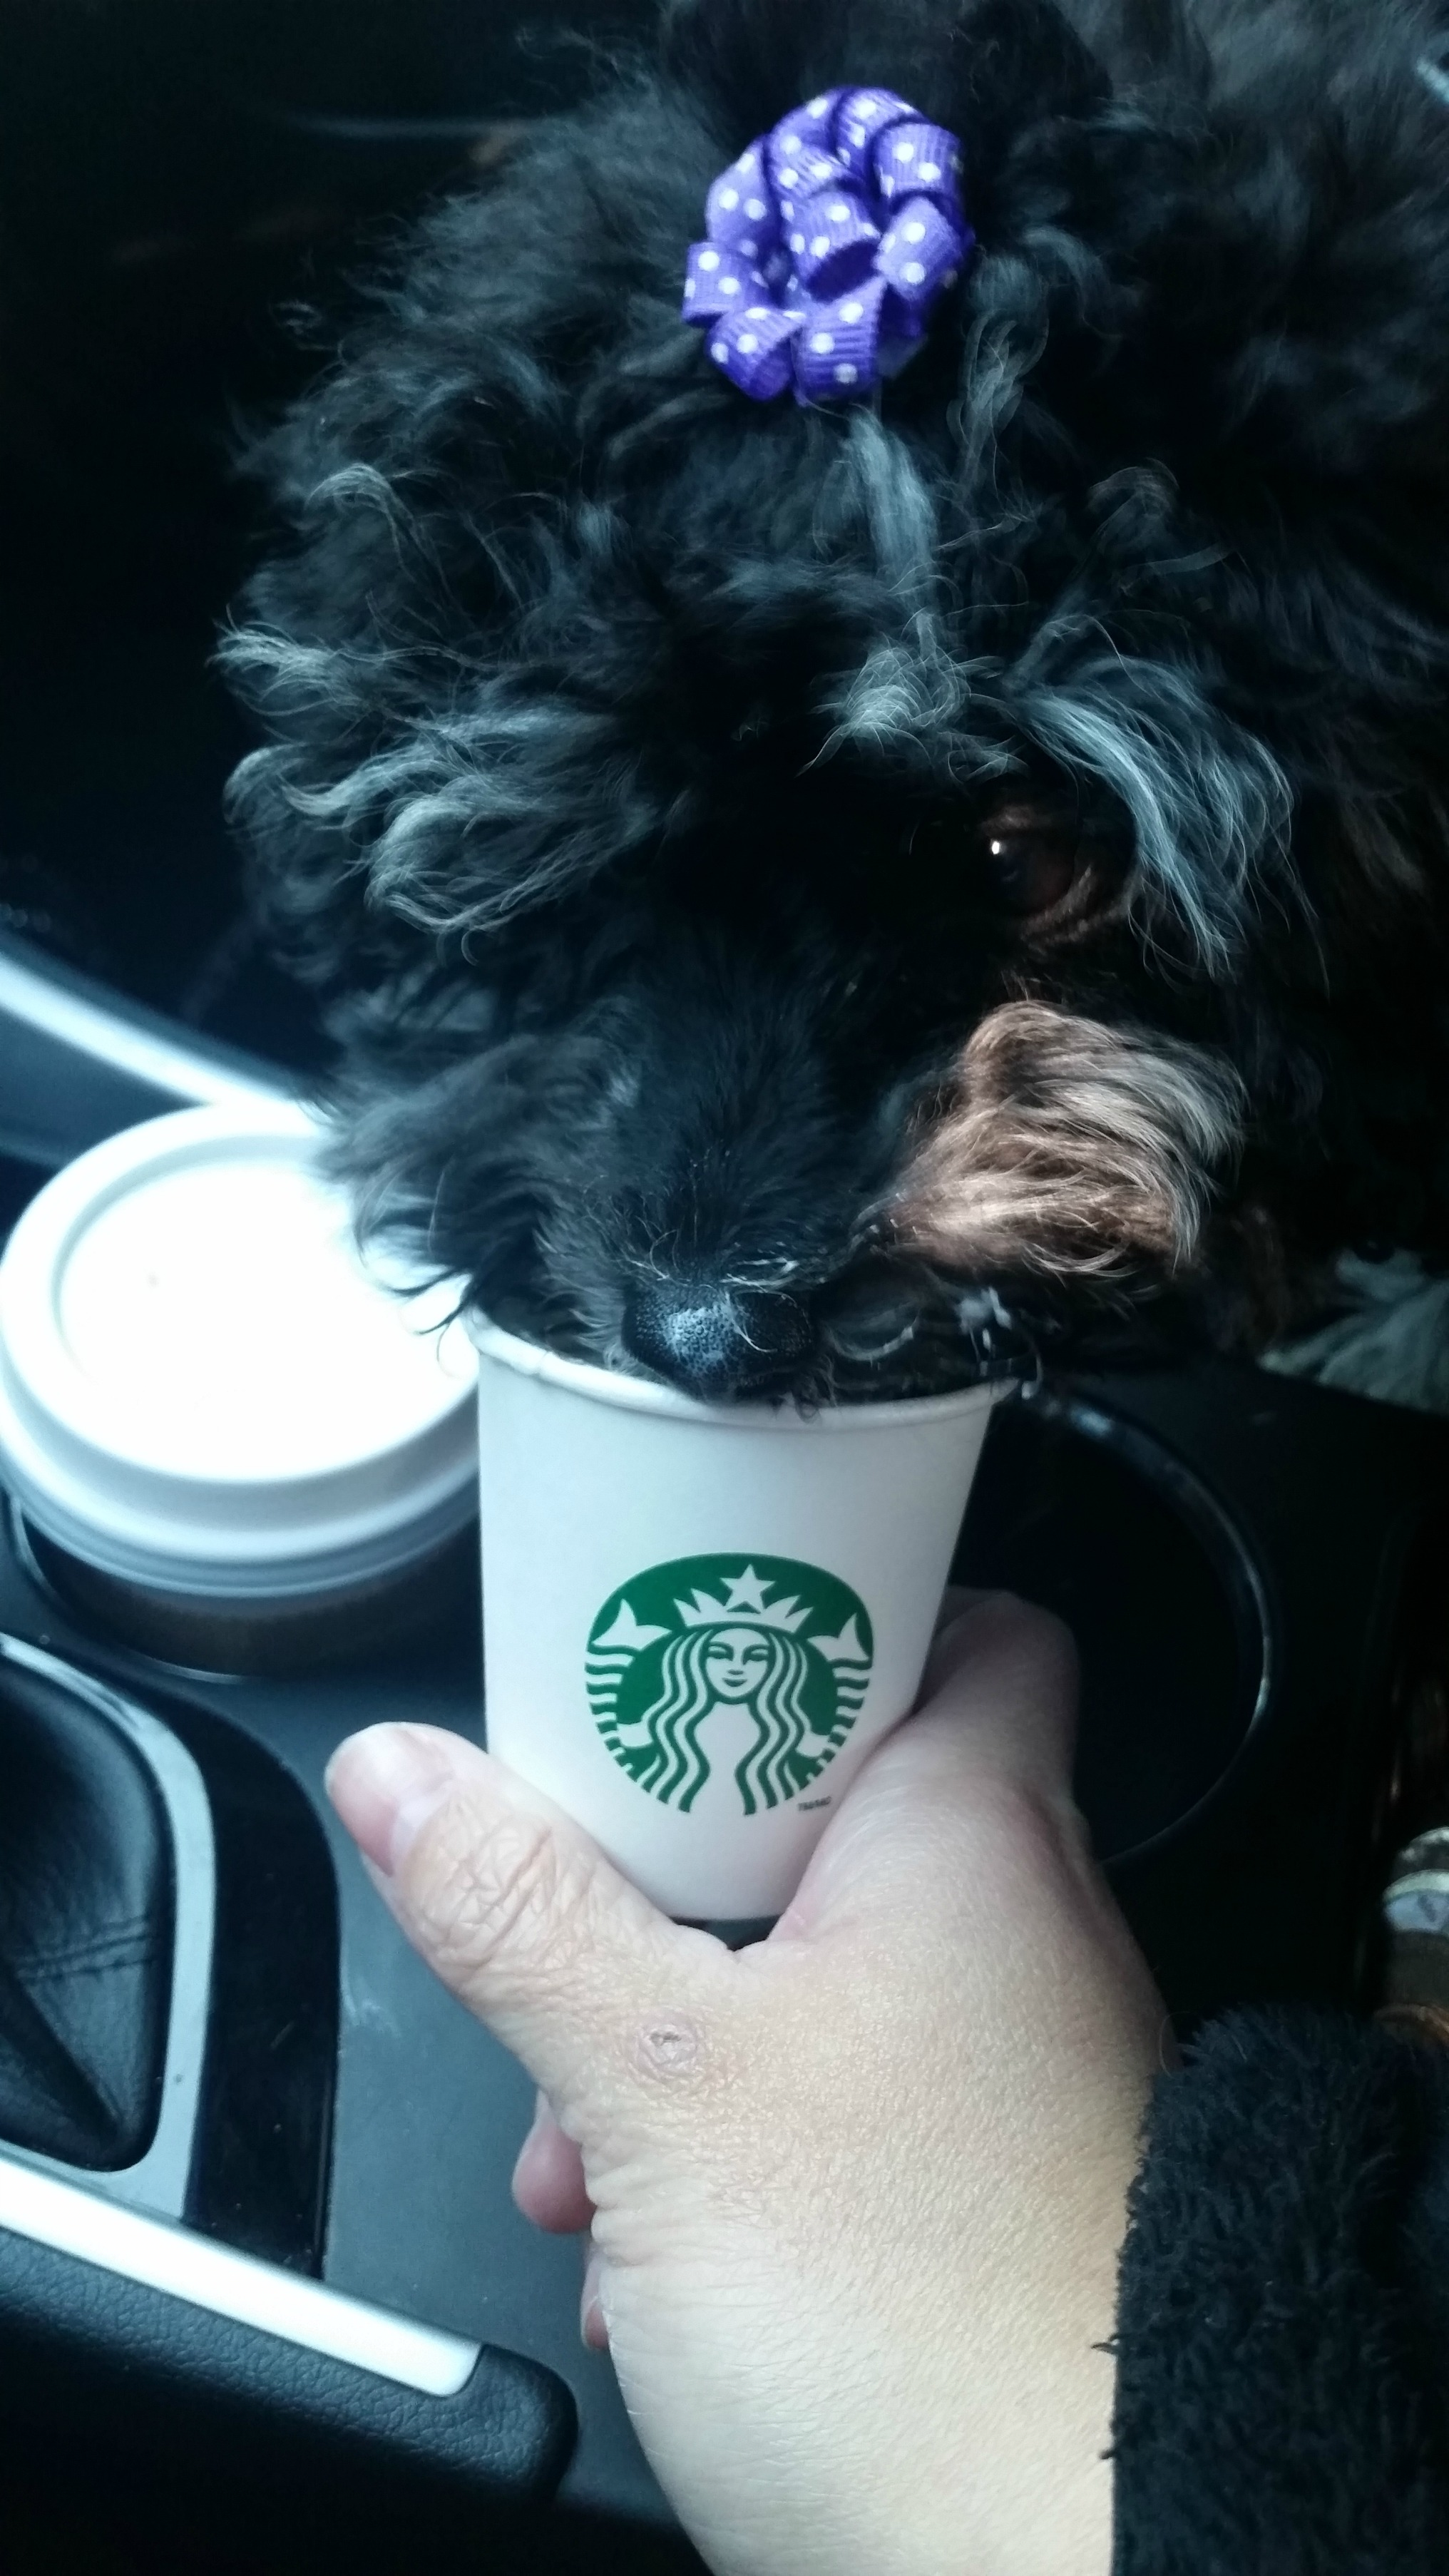 Wasabi loves Starbucks runs